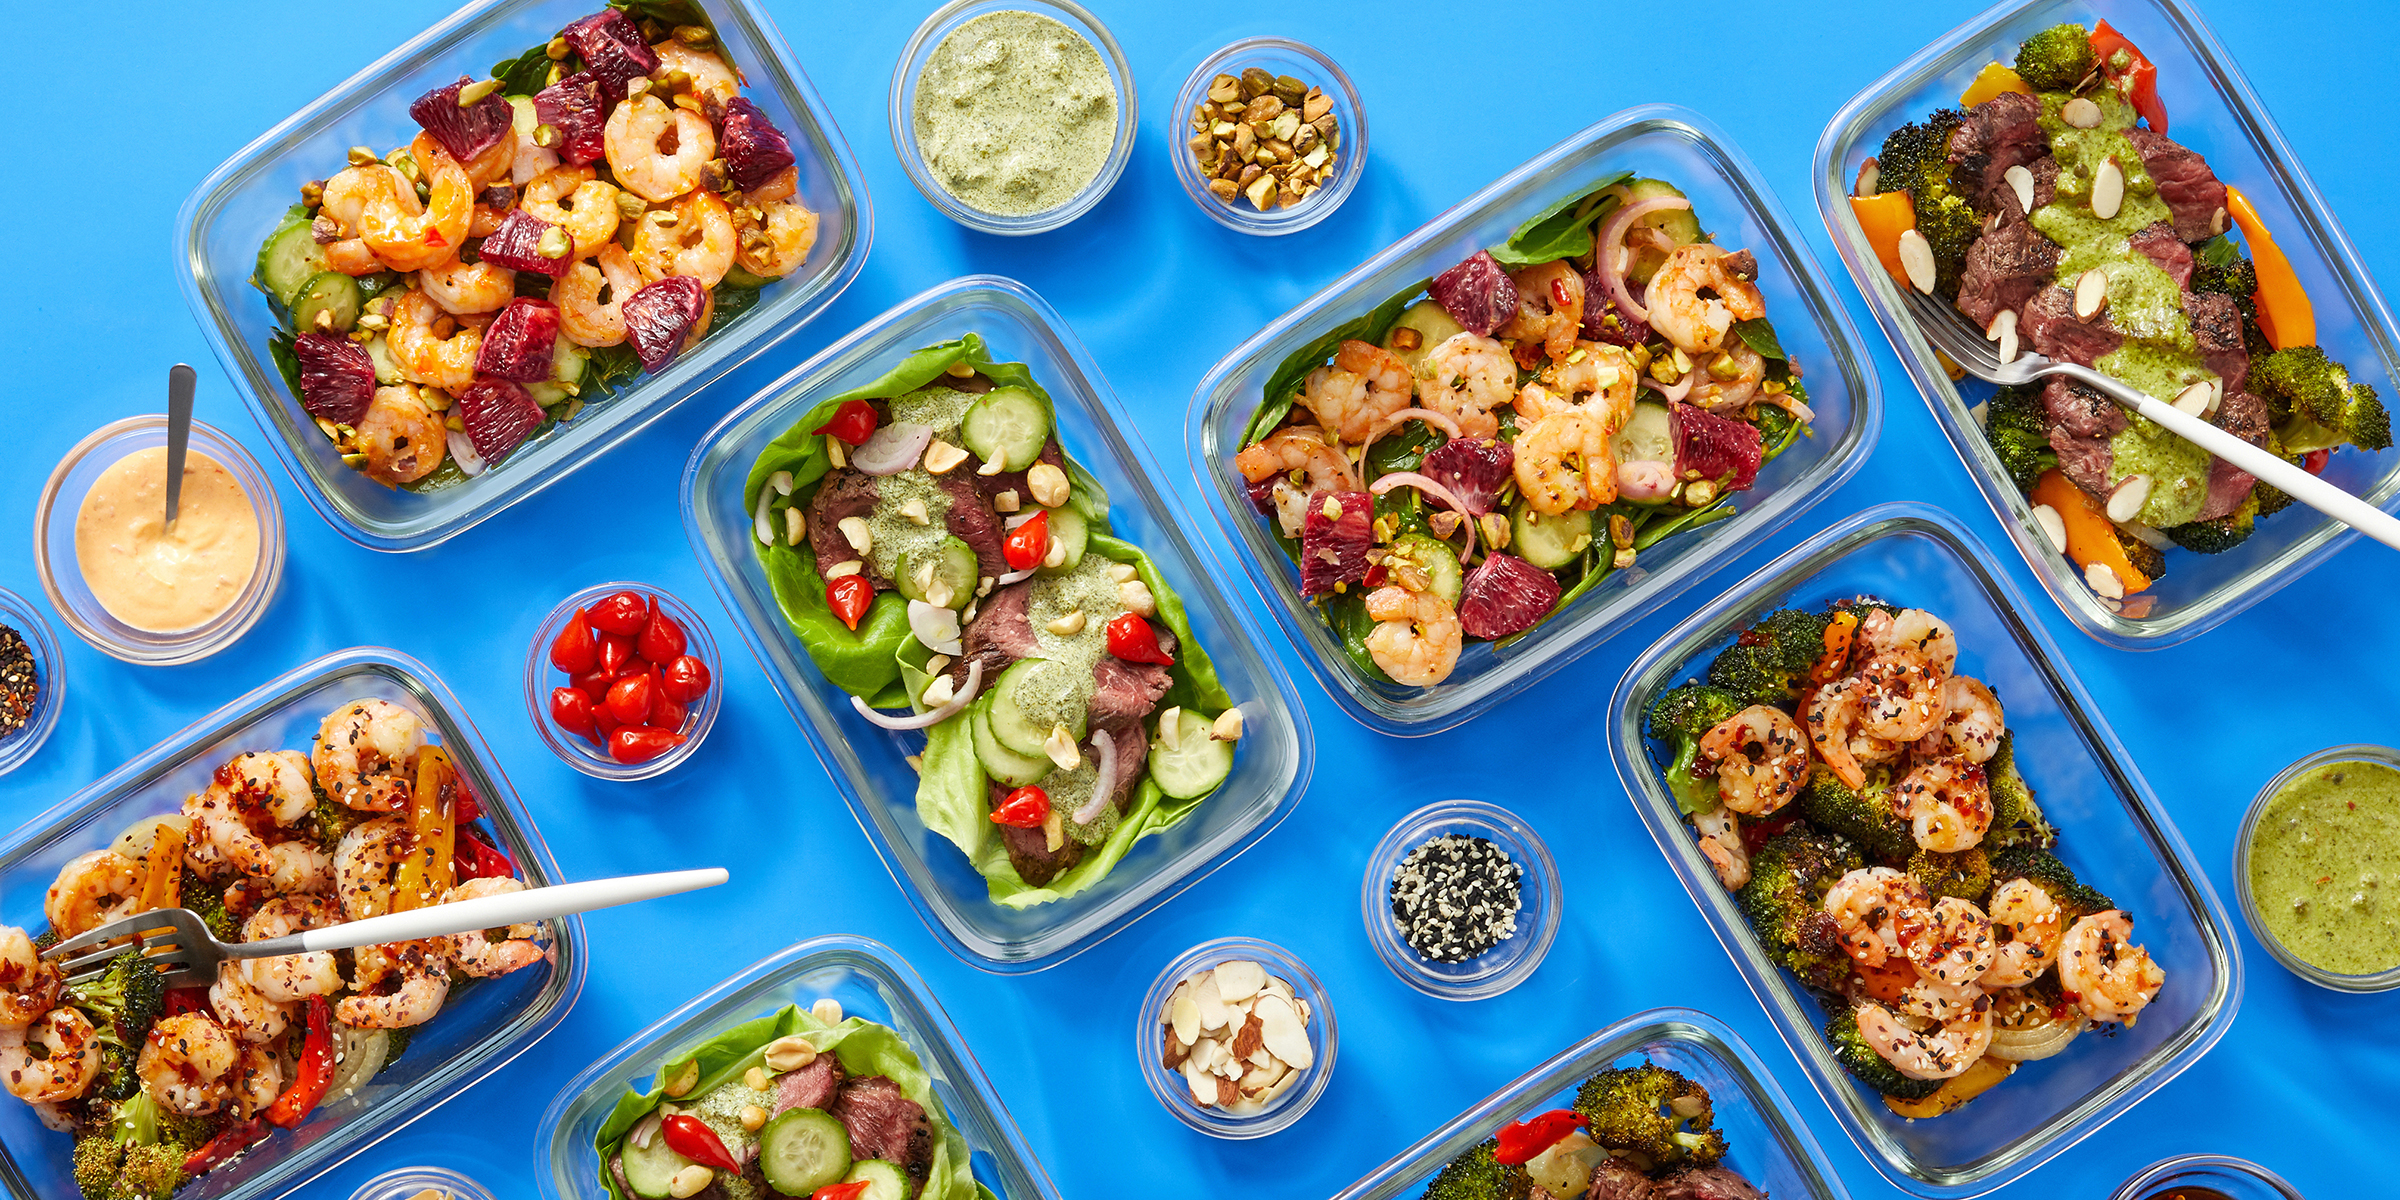 A spread of meal prep —glass containers filled with pre-portioned meals —on a blue background.